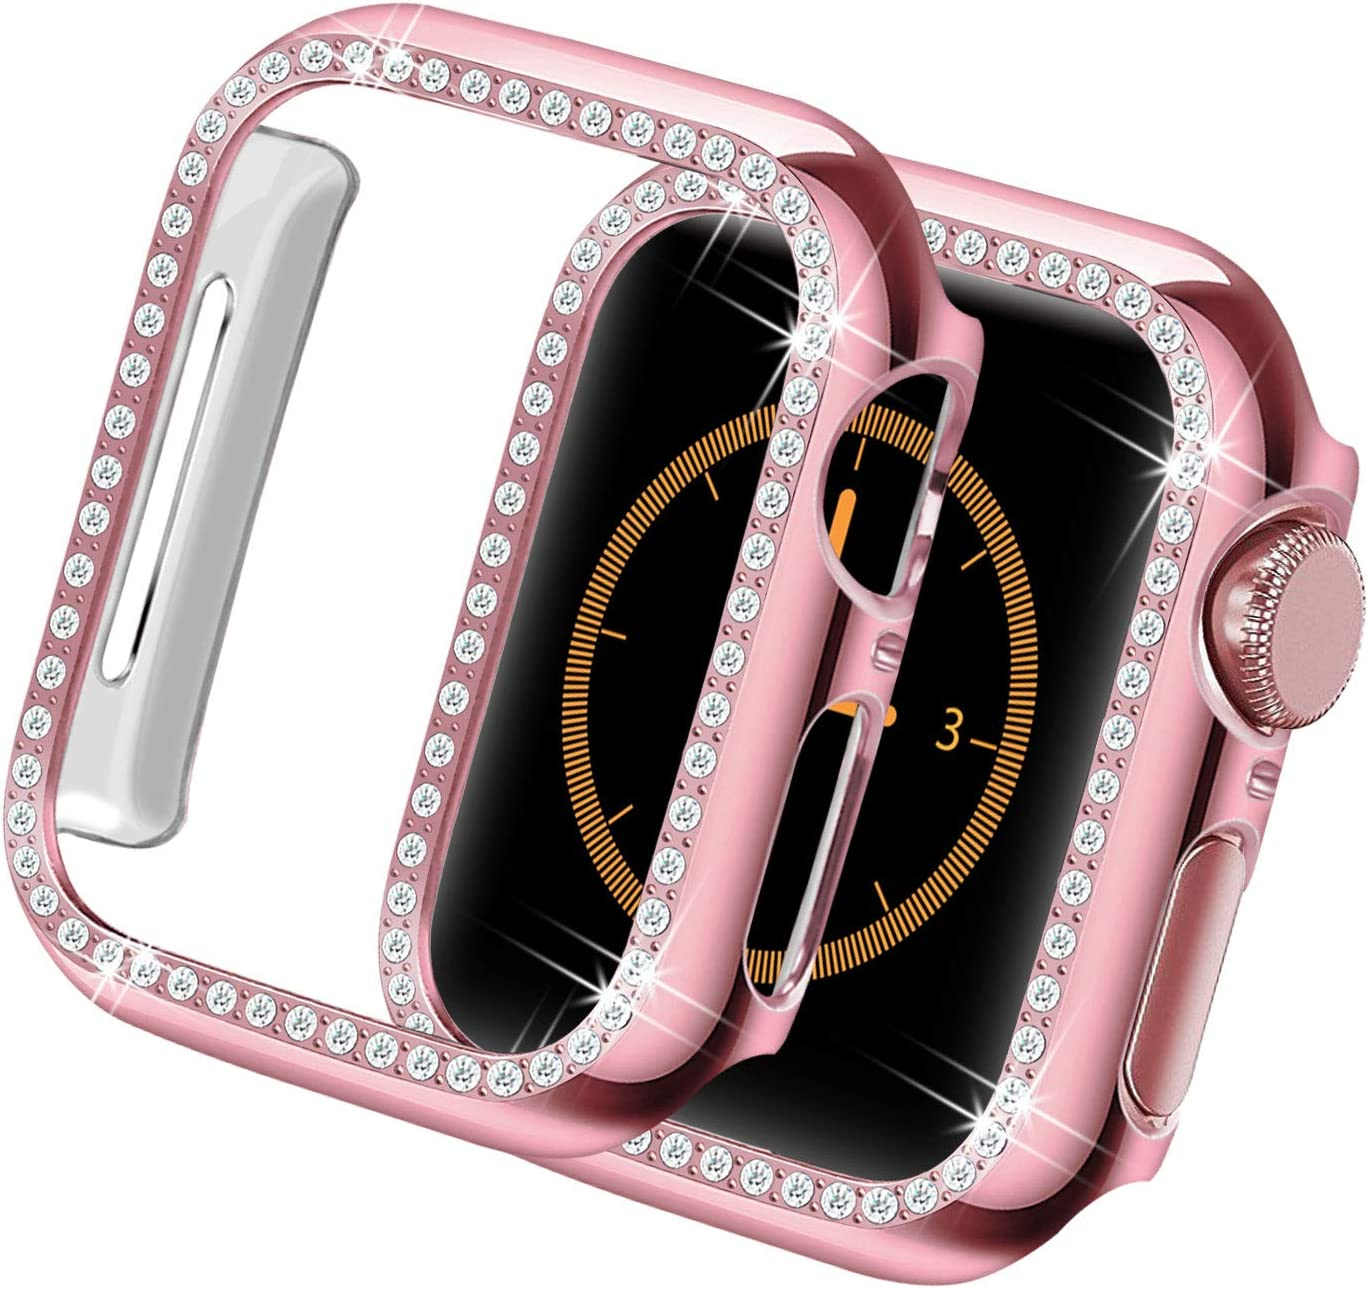 Yolovie Compatible for Apple Watch Case 40mm SE Series 6 5 4 iWatch Bling Face Cover Crystal Diamonds Shiny Rhinestone Bumper, PC Protective Frame for Women Girl (Pink-Diamond, 40mm)